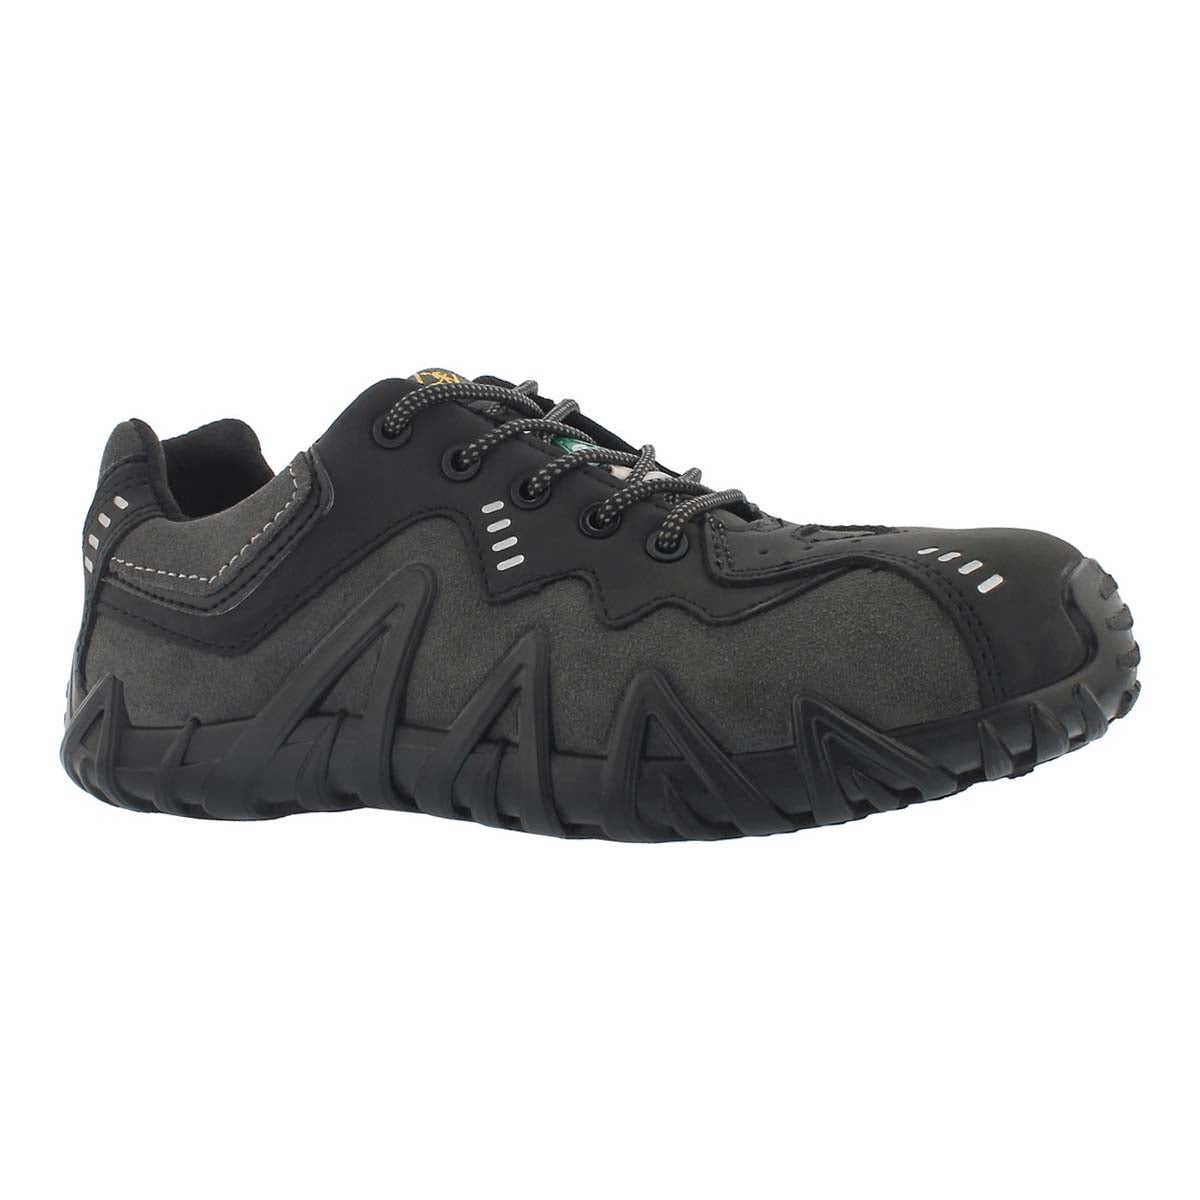 Men's SPIDER black/charcoal lace up CSA sneakers